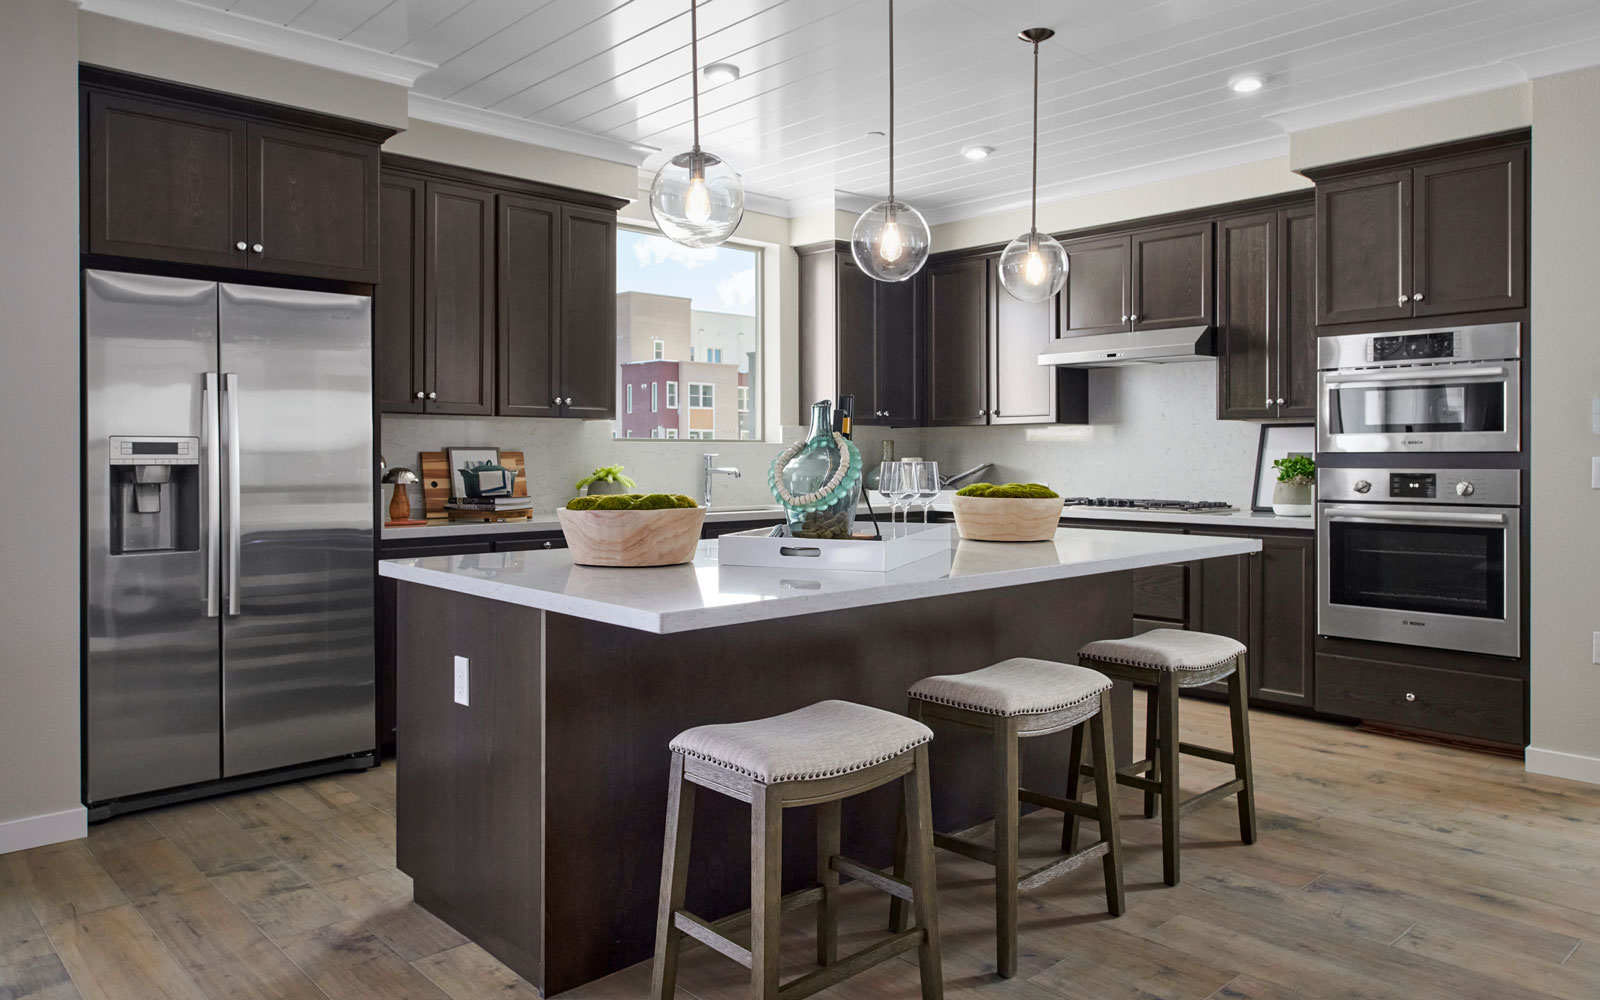 Kitchen | Residence 1 | Hyde Park at Boulevard in Dublin, CA | Brookfield Residential